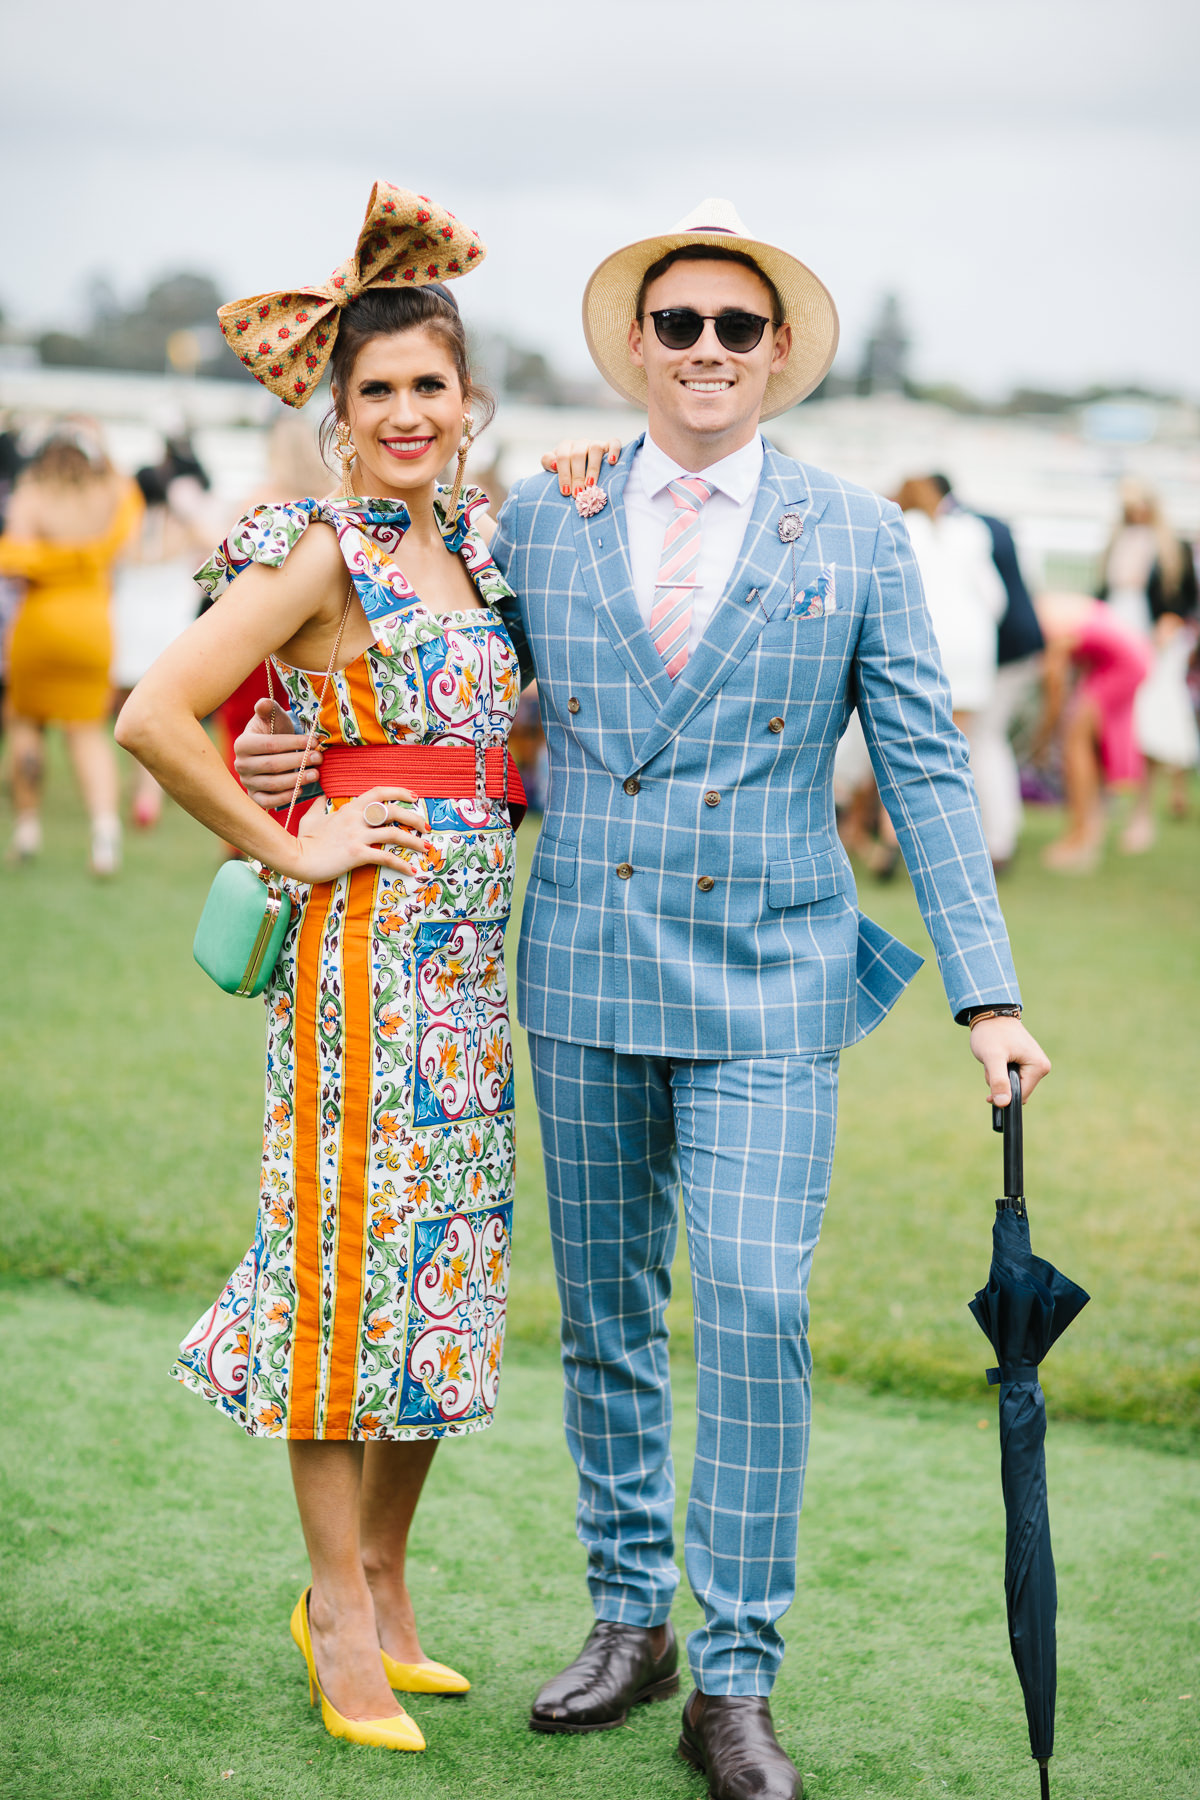 Couples Fashion (Squad) Winner at the Fashions on the Field Competition at Caulfield Cup